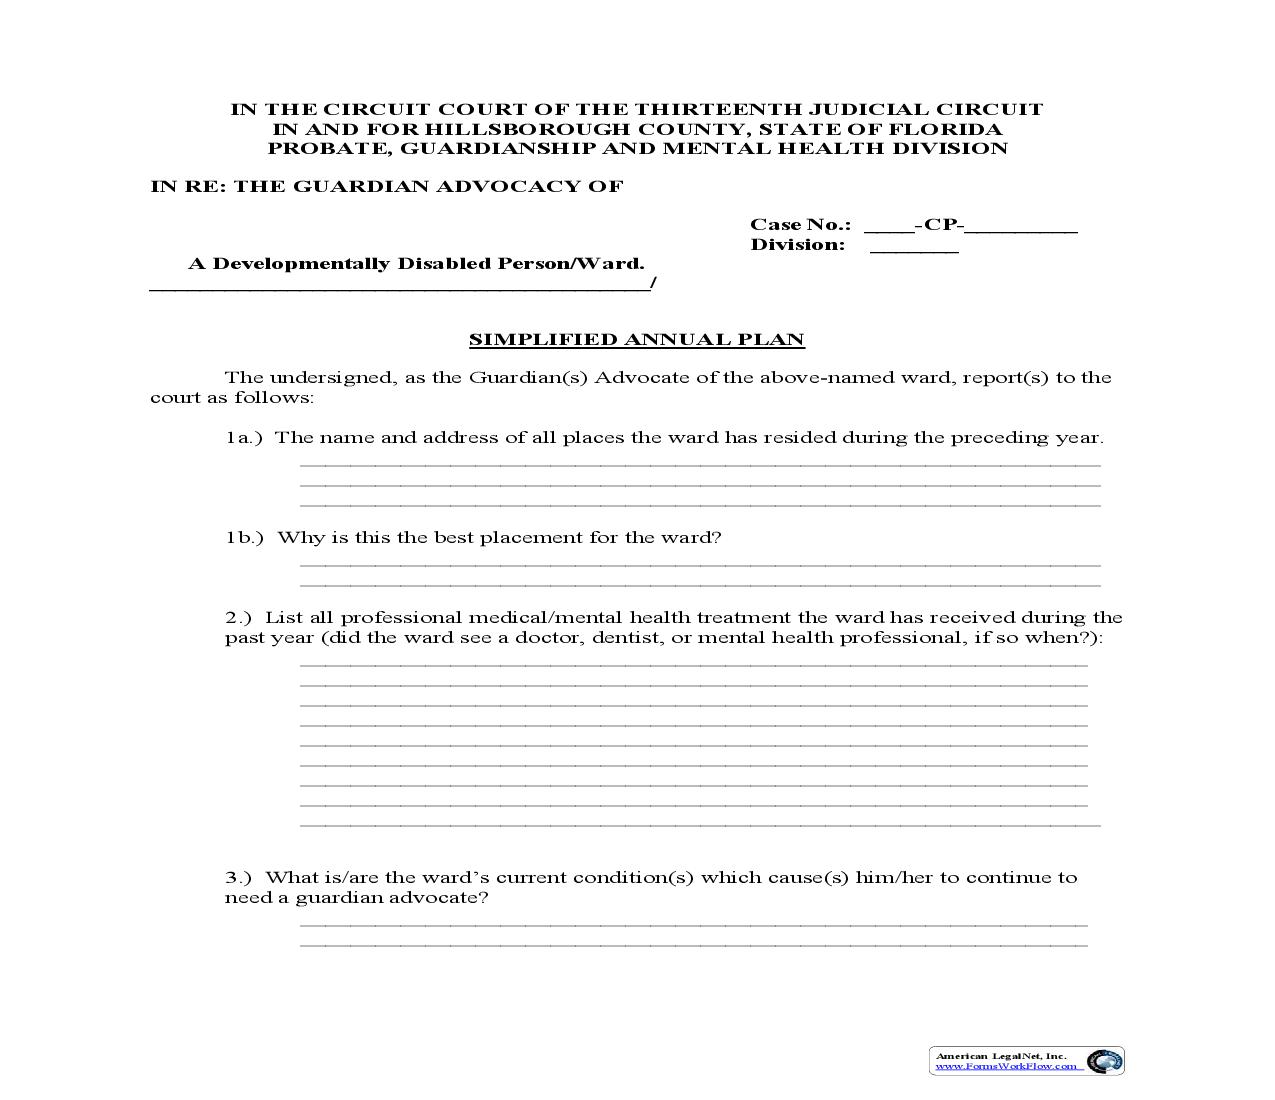 Simplified Annual Plan For Guardian Advocate   Pdf Fpdf Doc Docx   Florida